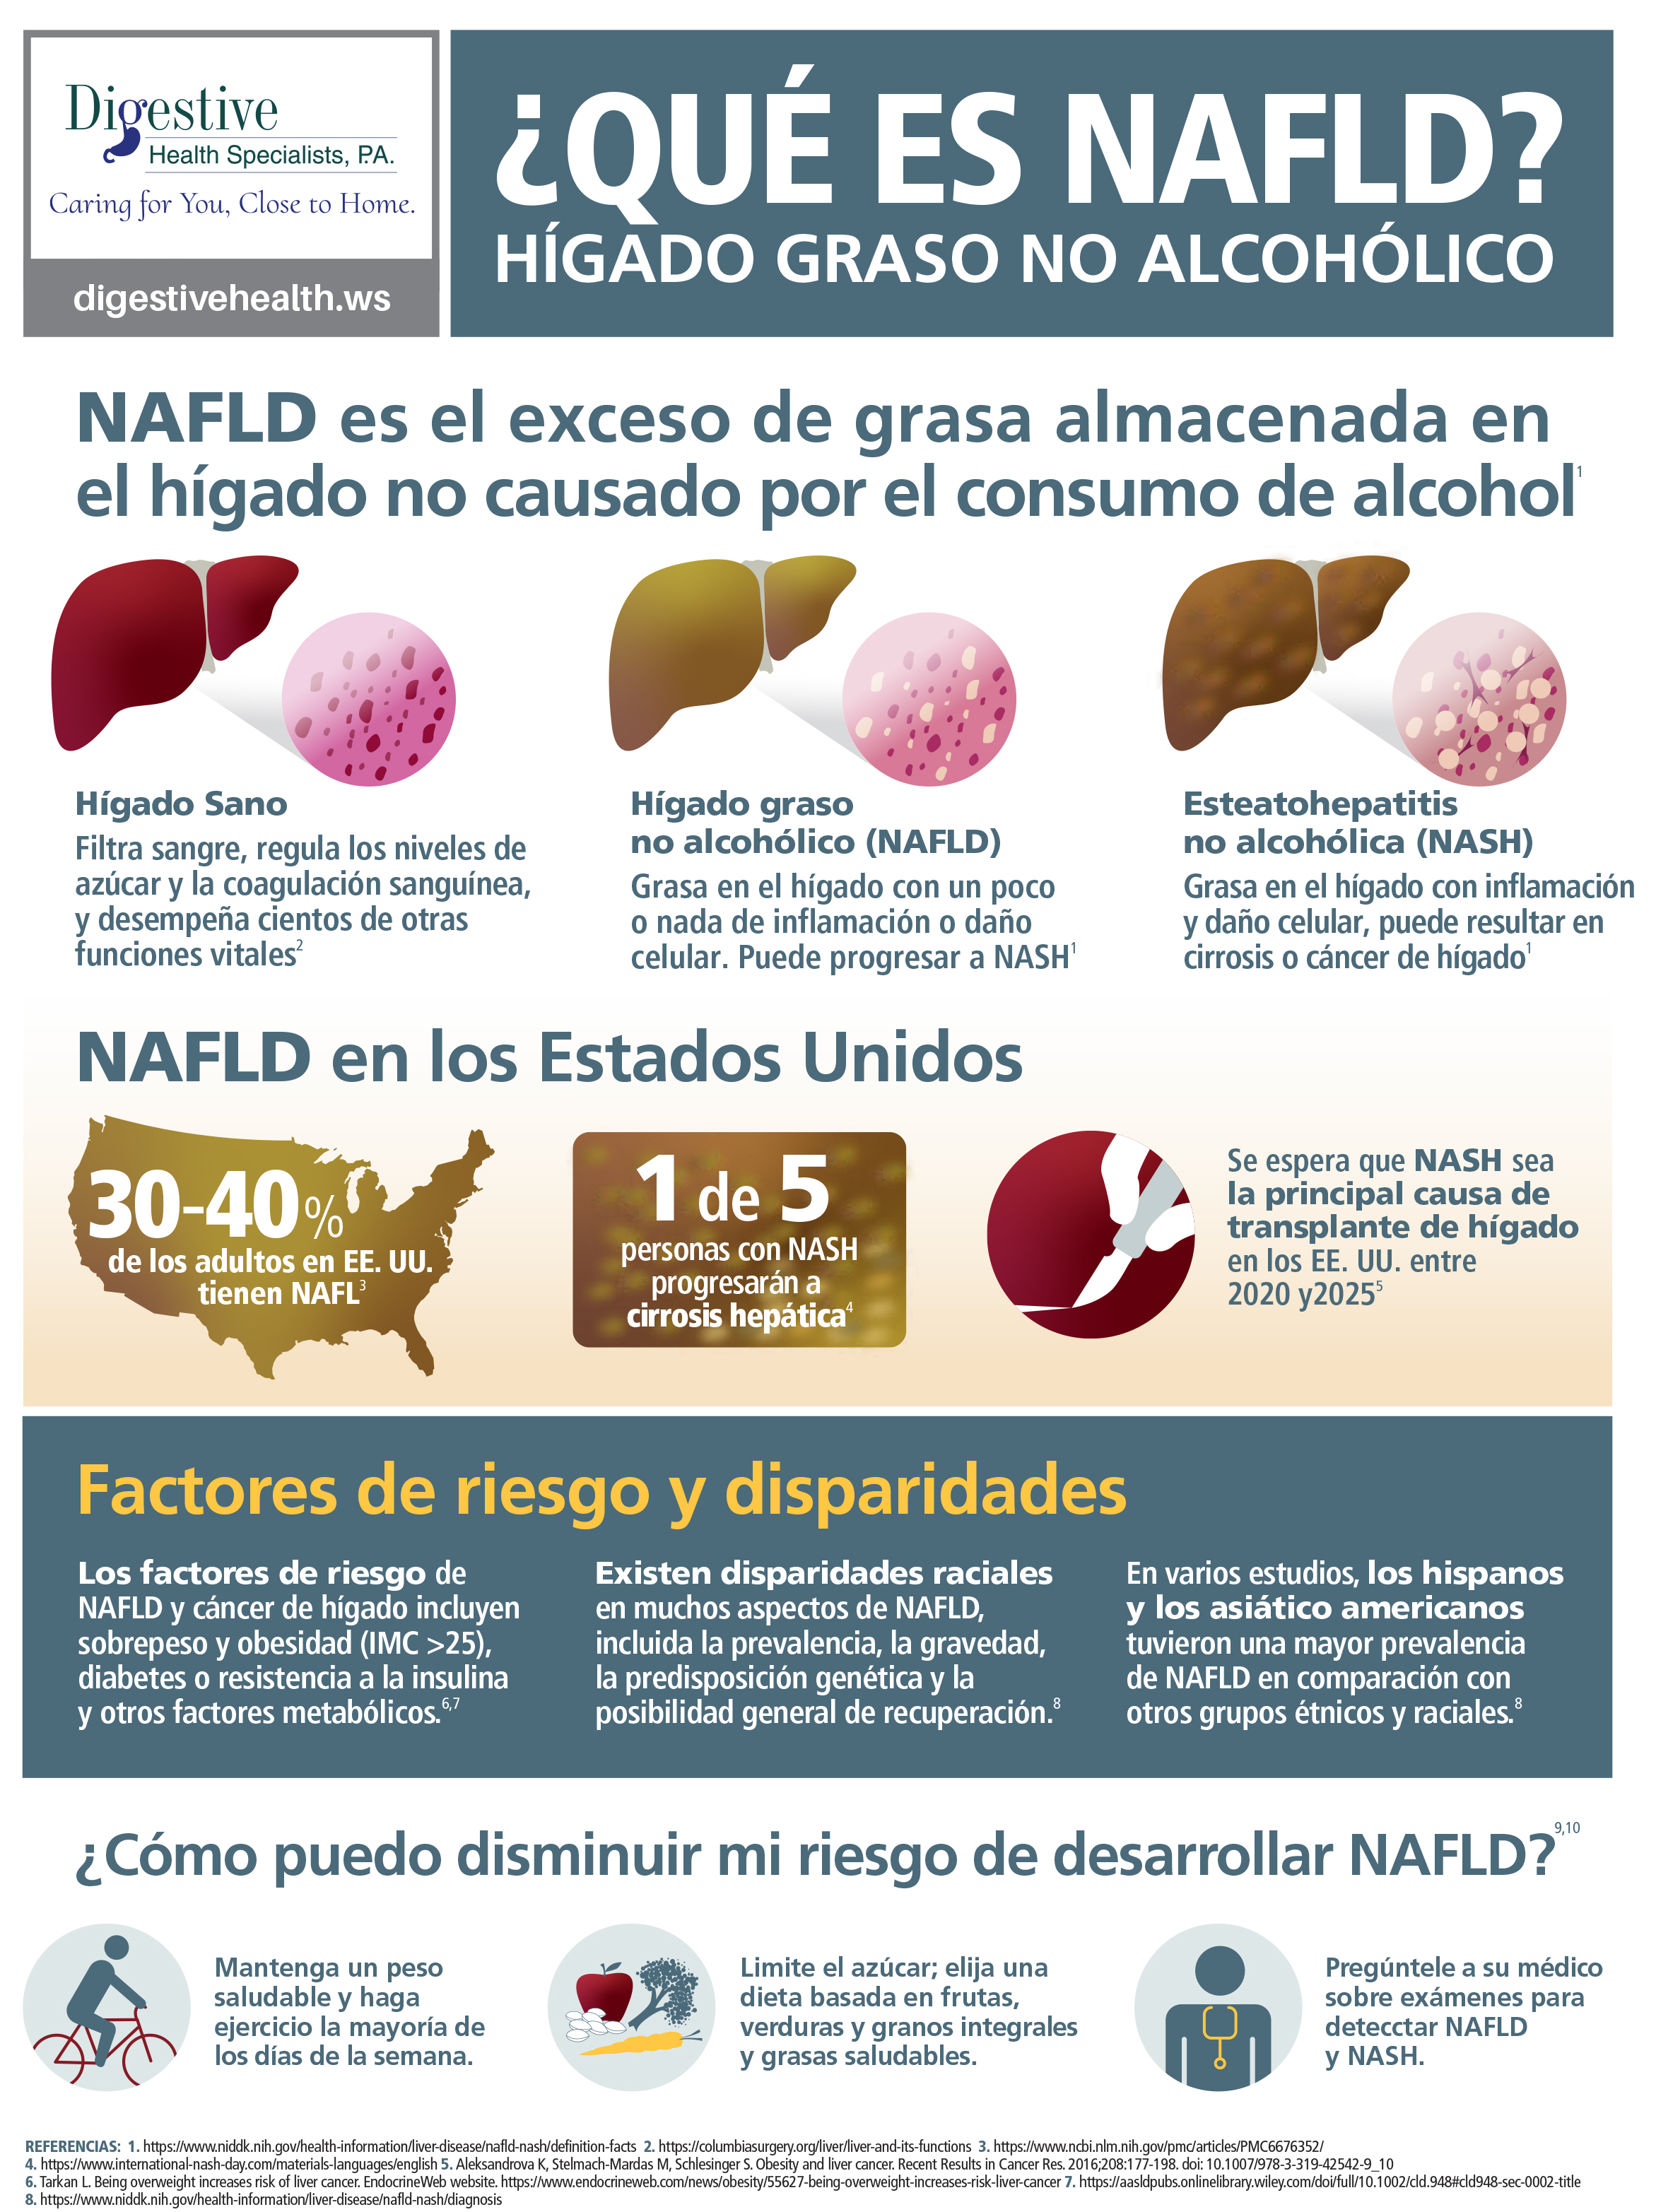 Nonalcoholic fatty liver disease information in Spanish